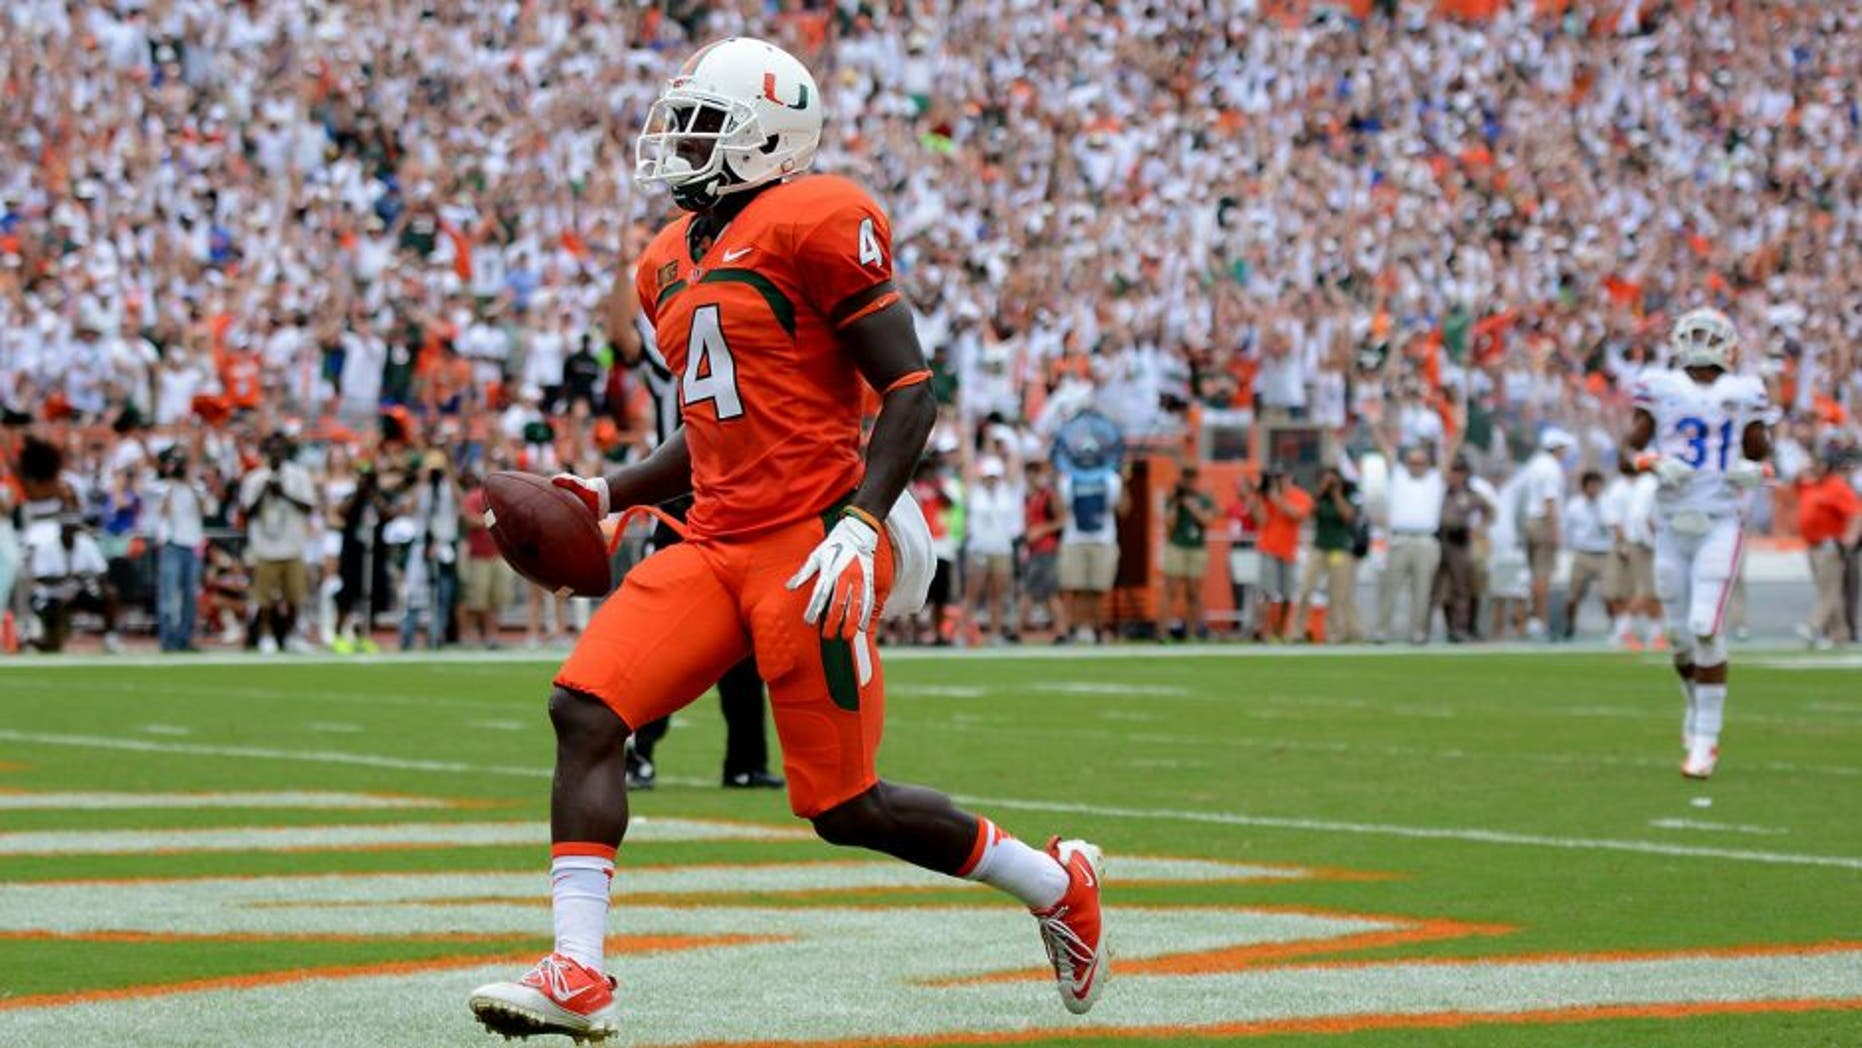 Sep 7, 2013; Miami Gardens, FL, USA; Miami Hurricanes wide receiver Phillip Dorsett (4) scores untouched against the Florida Gators during the first half of the game at Sun Life Stadium. Mandatory Credit: Brad Barr-USA TODAY Sports